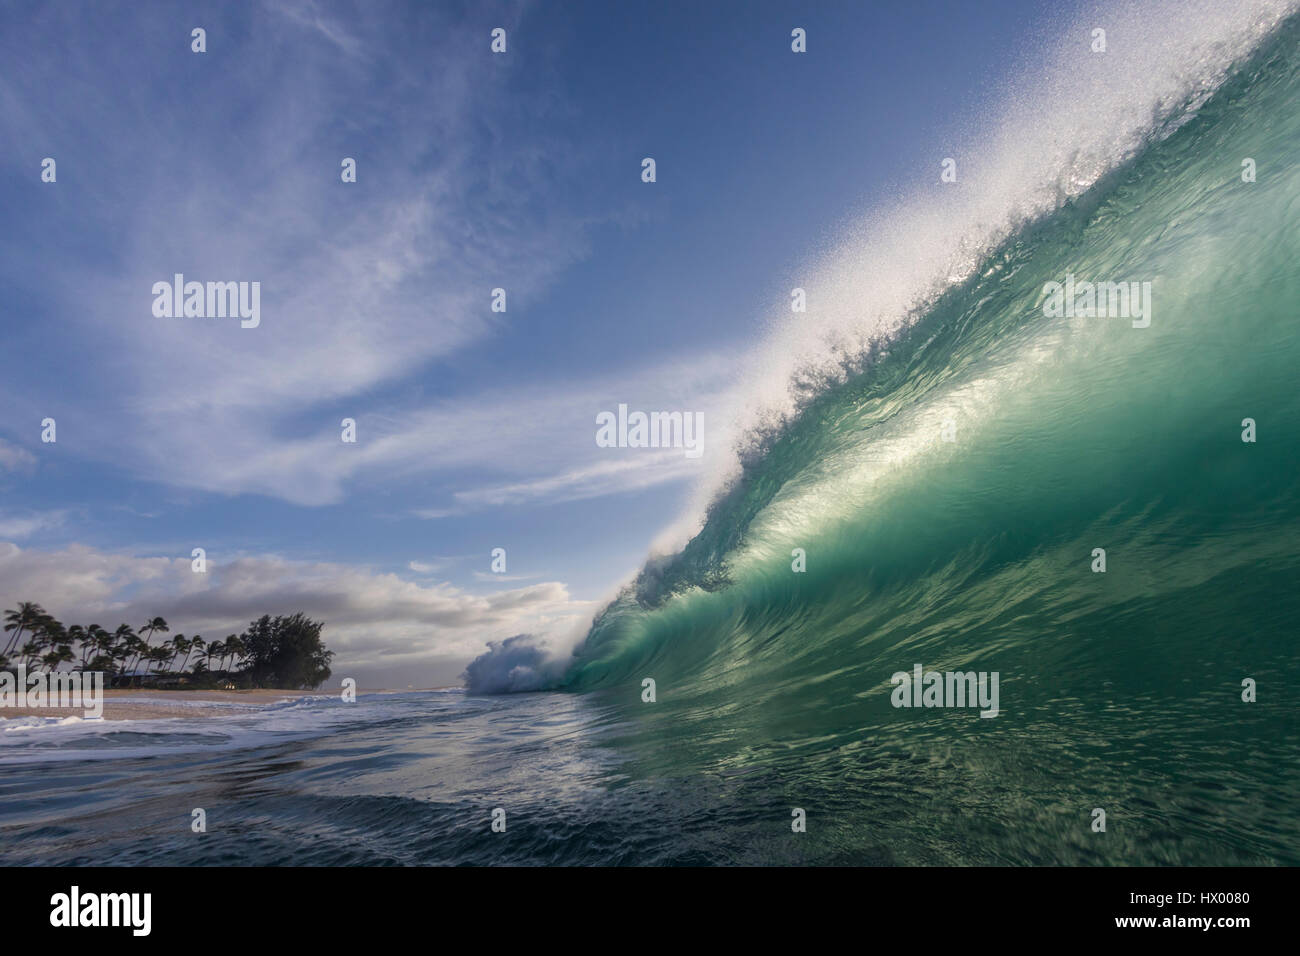 A shore break wave at Keiki beach on the North Shore of Oahu. - Stock Image